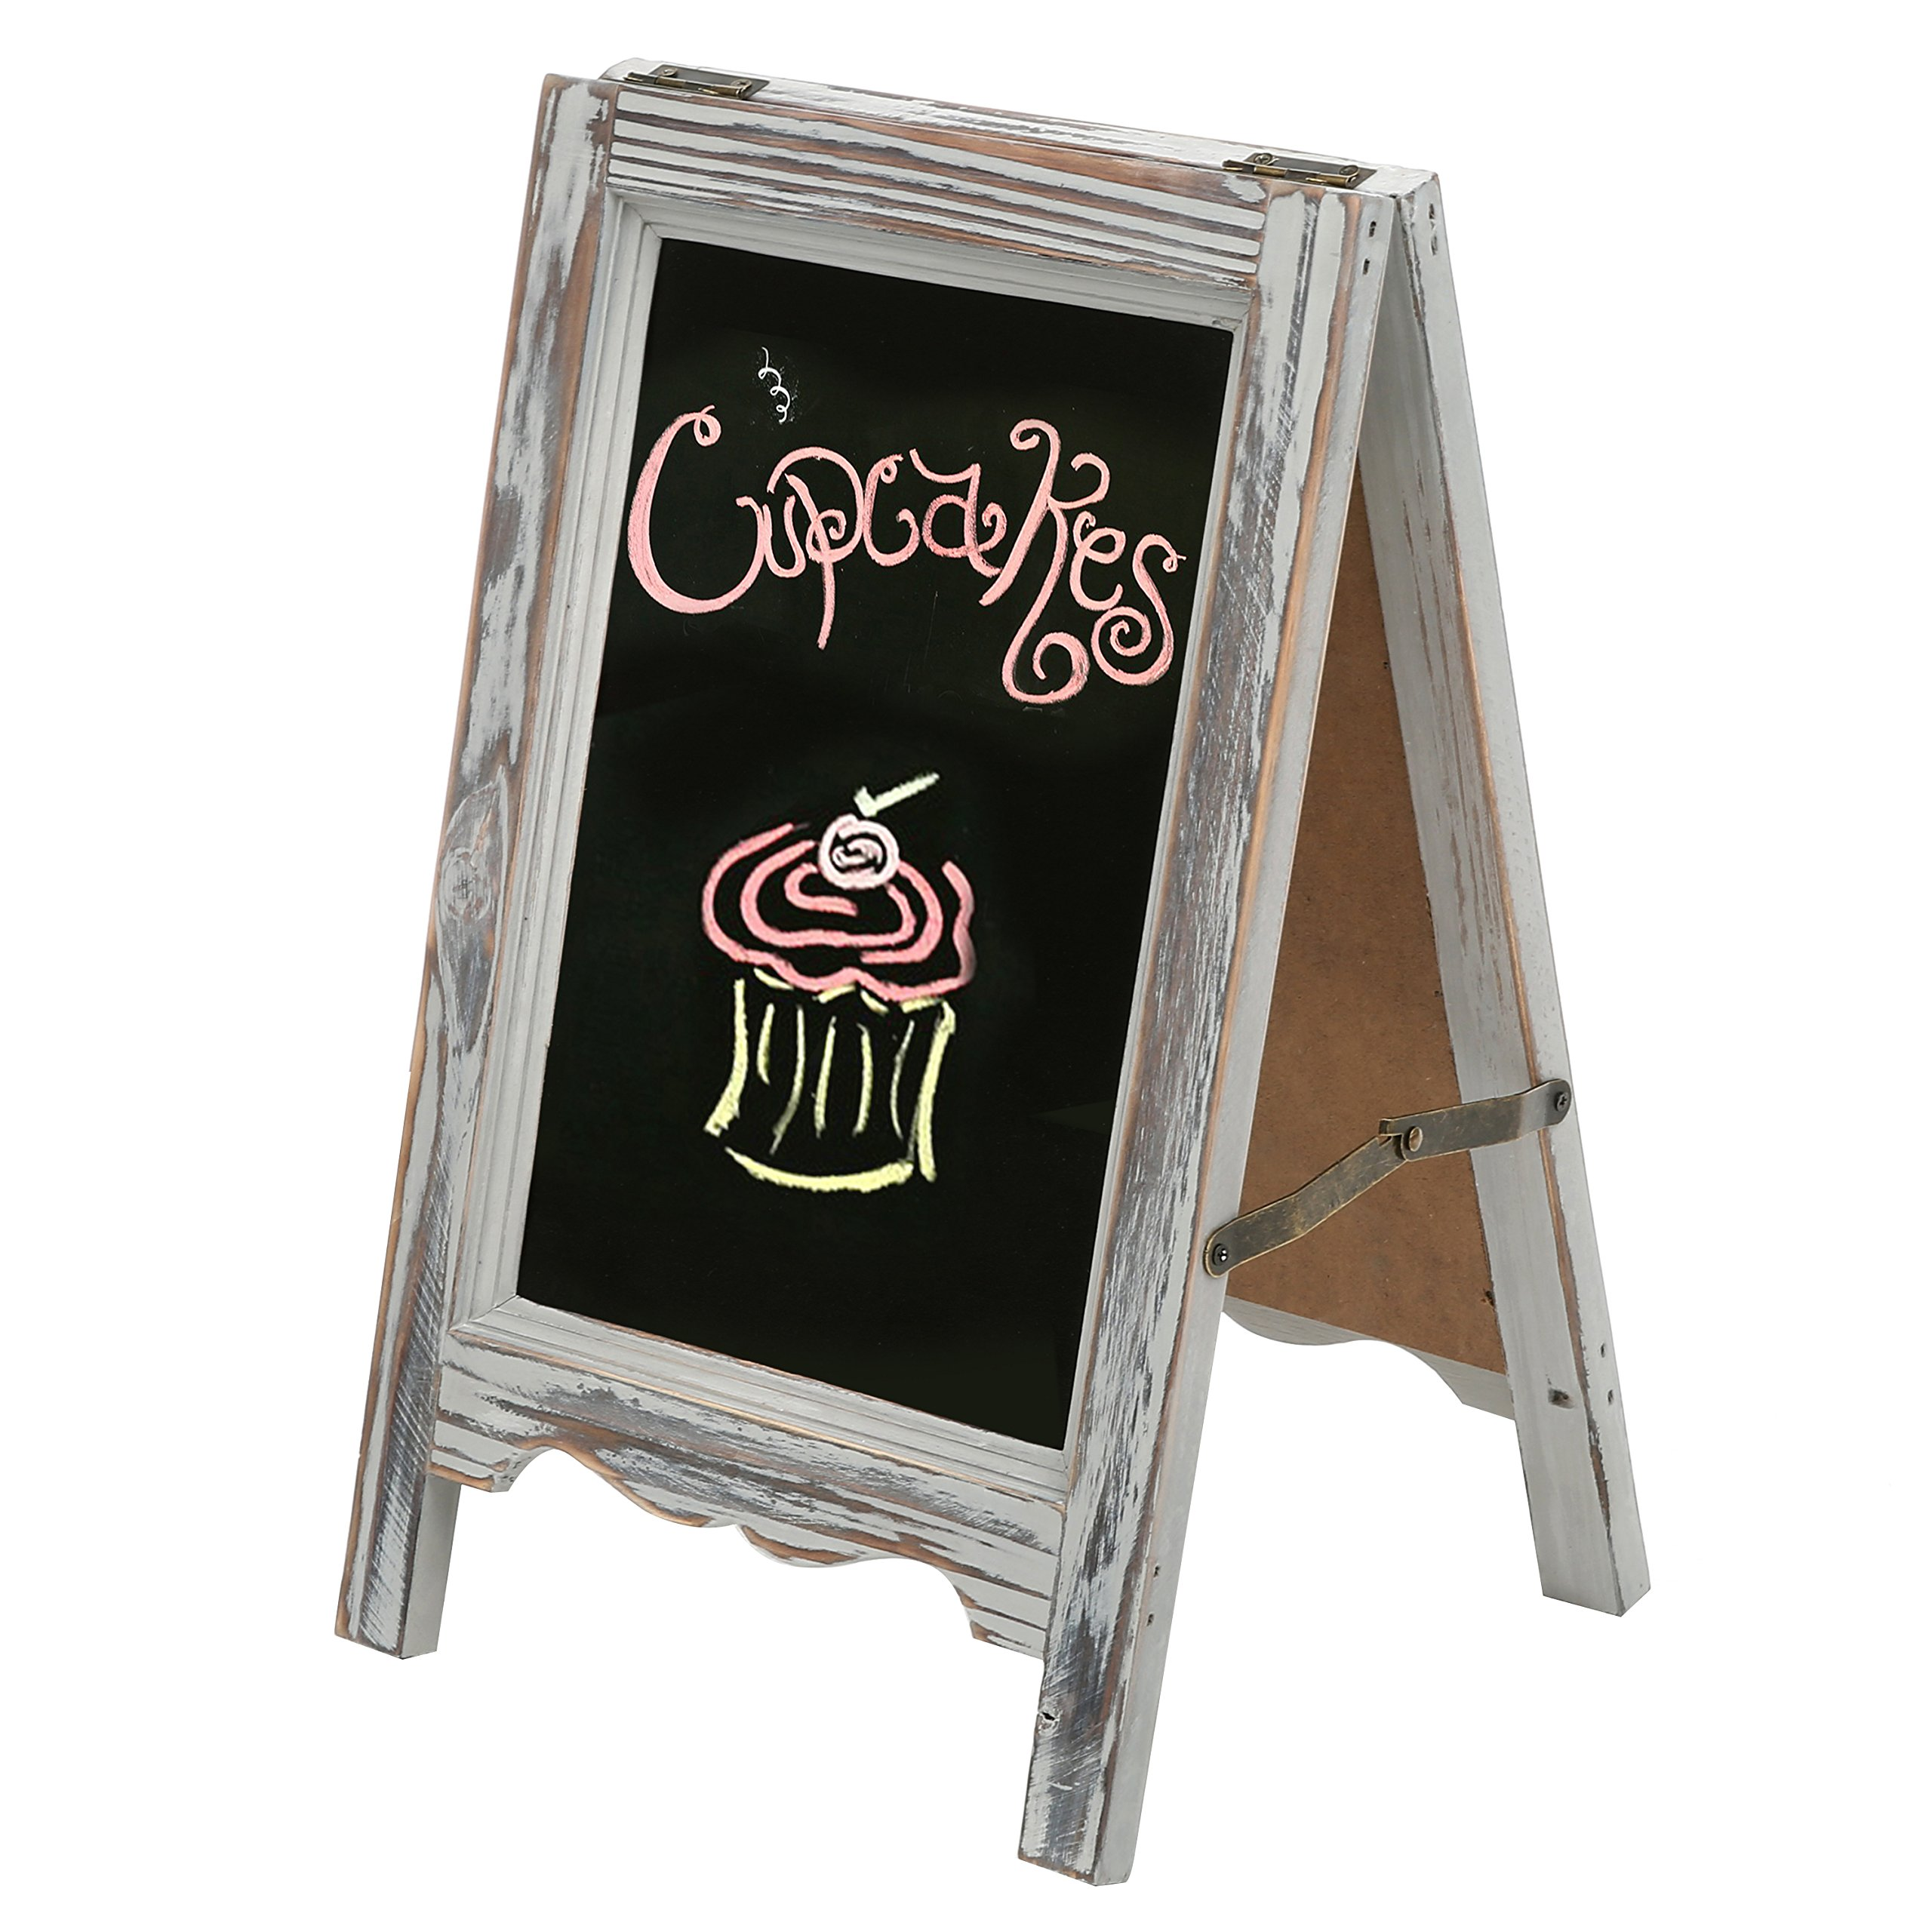 MyGift 15-inch Rustic Wood A-Frame Double-Sided Chalkboard Easel with Scalloped Bottom, Vintage Gray